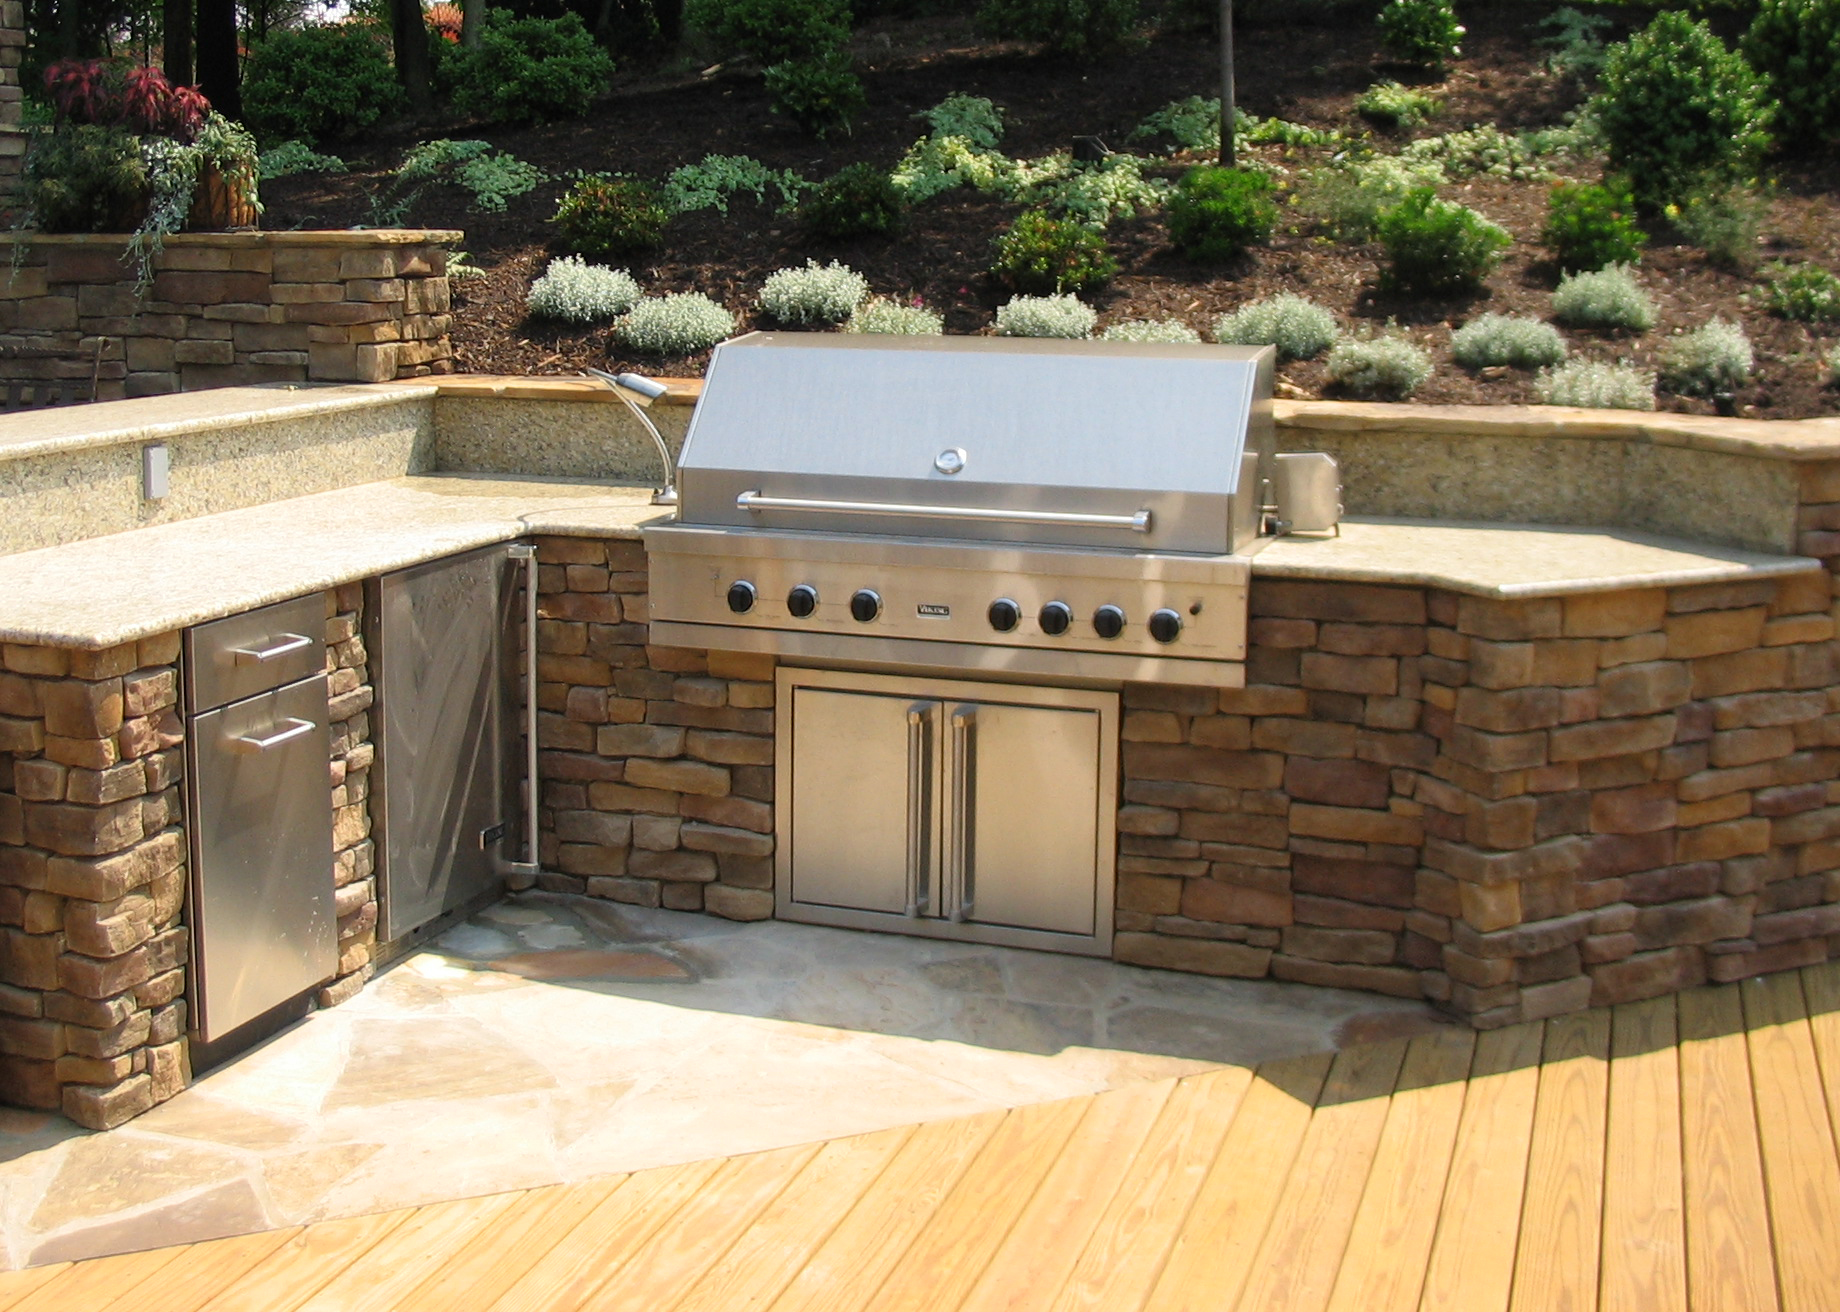 Designing an outdoor kitchen revolutionary gardens for Outdoor kitchen cabinets plans